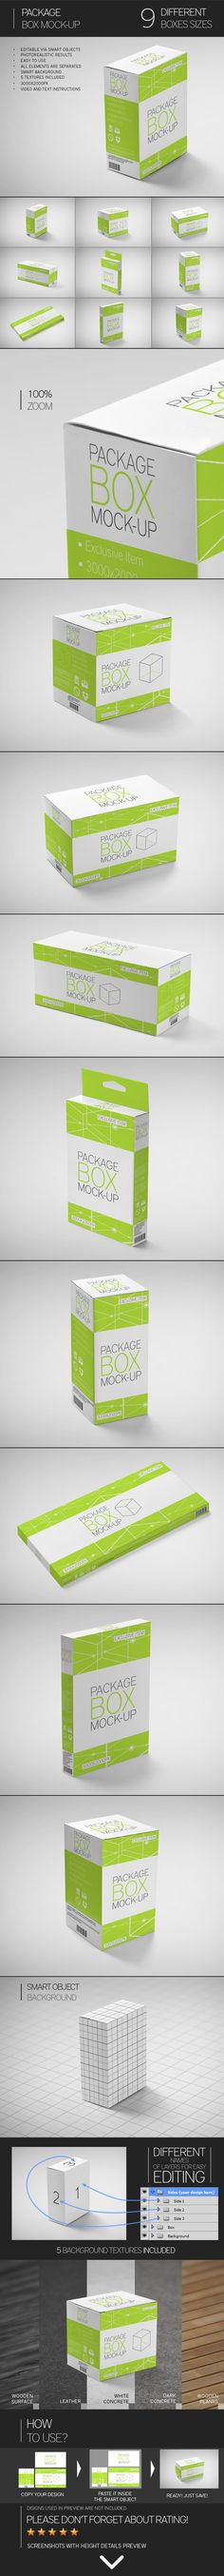 Package Box Mock-Up by Eugene Smith, via Behance